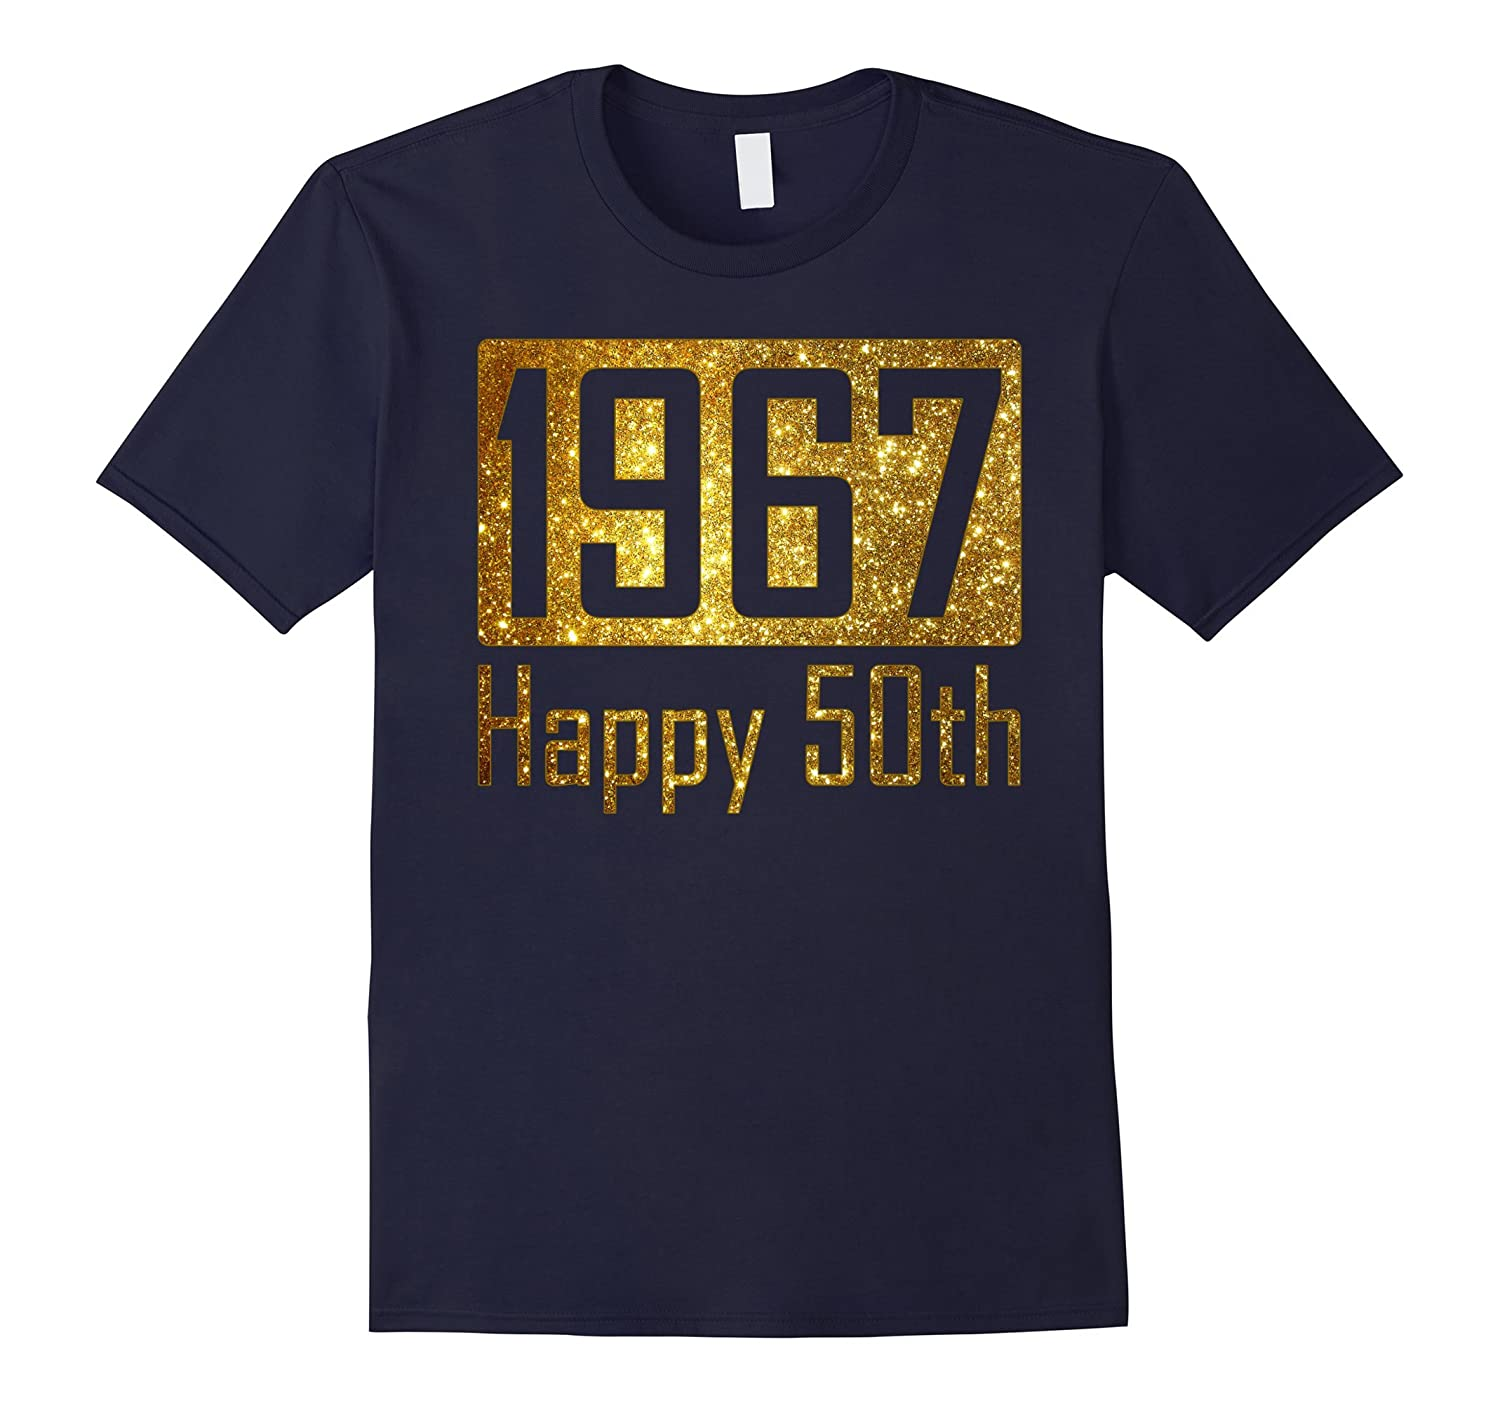 1967 Happy 50th Birthday Gift - gold glitter style tshirt-TH